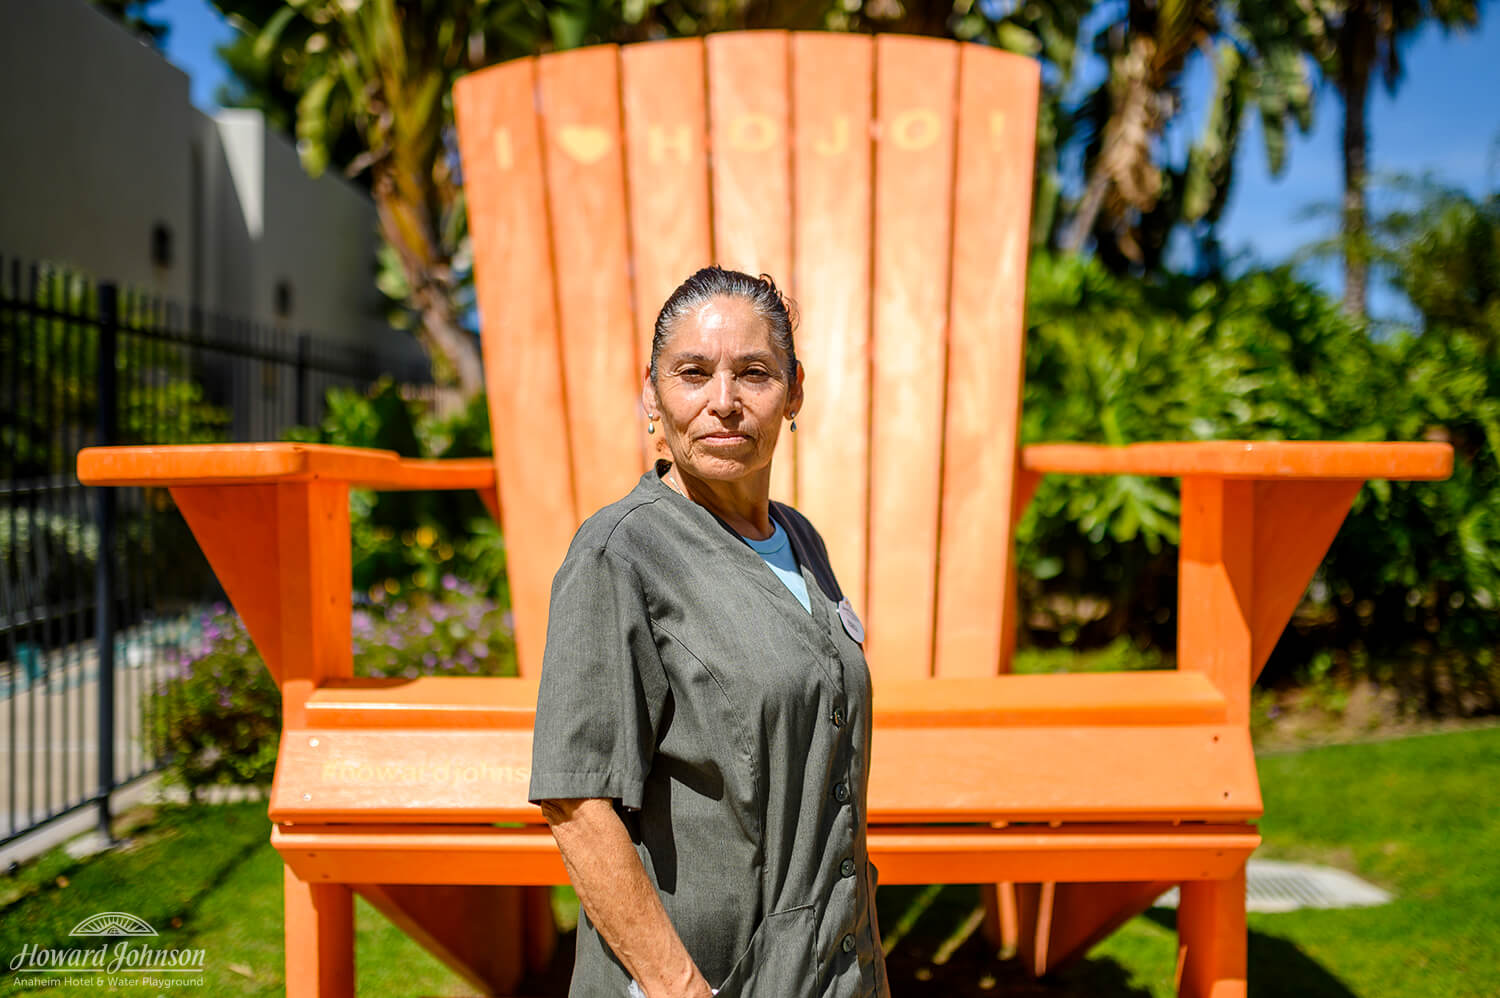 A Howard Johnson Anaheim employee named Teresa poses outside the hotel in front of a large orange Adirondack chair